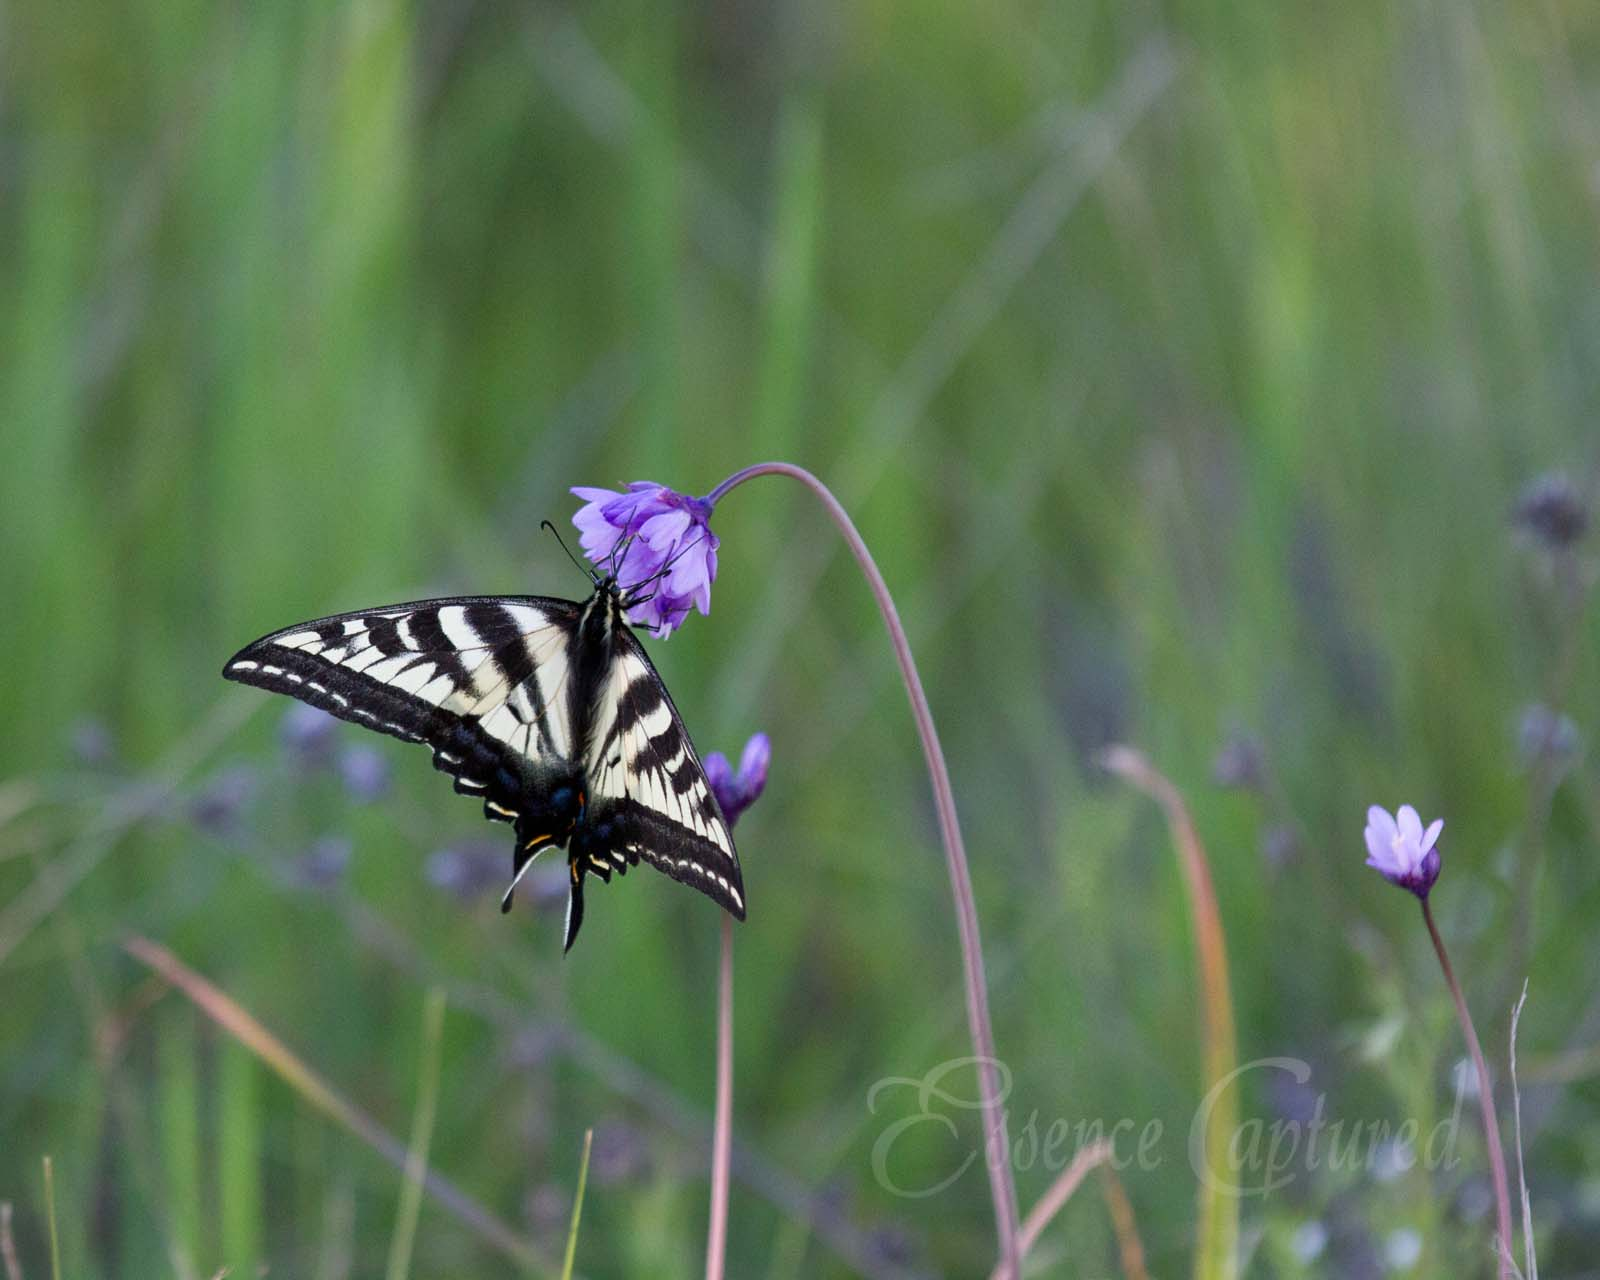 Western Tiger Swallowtail Butterfly yellow and black collecting nectar from purple flower in green field